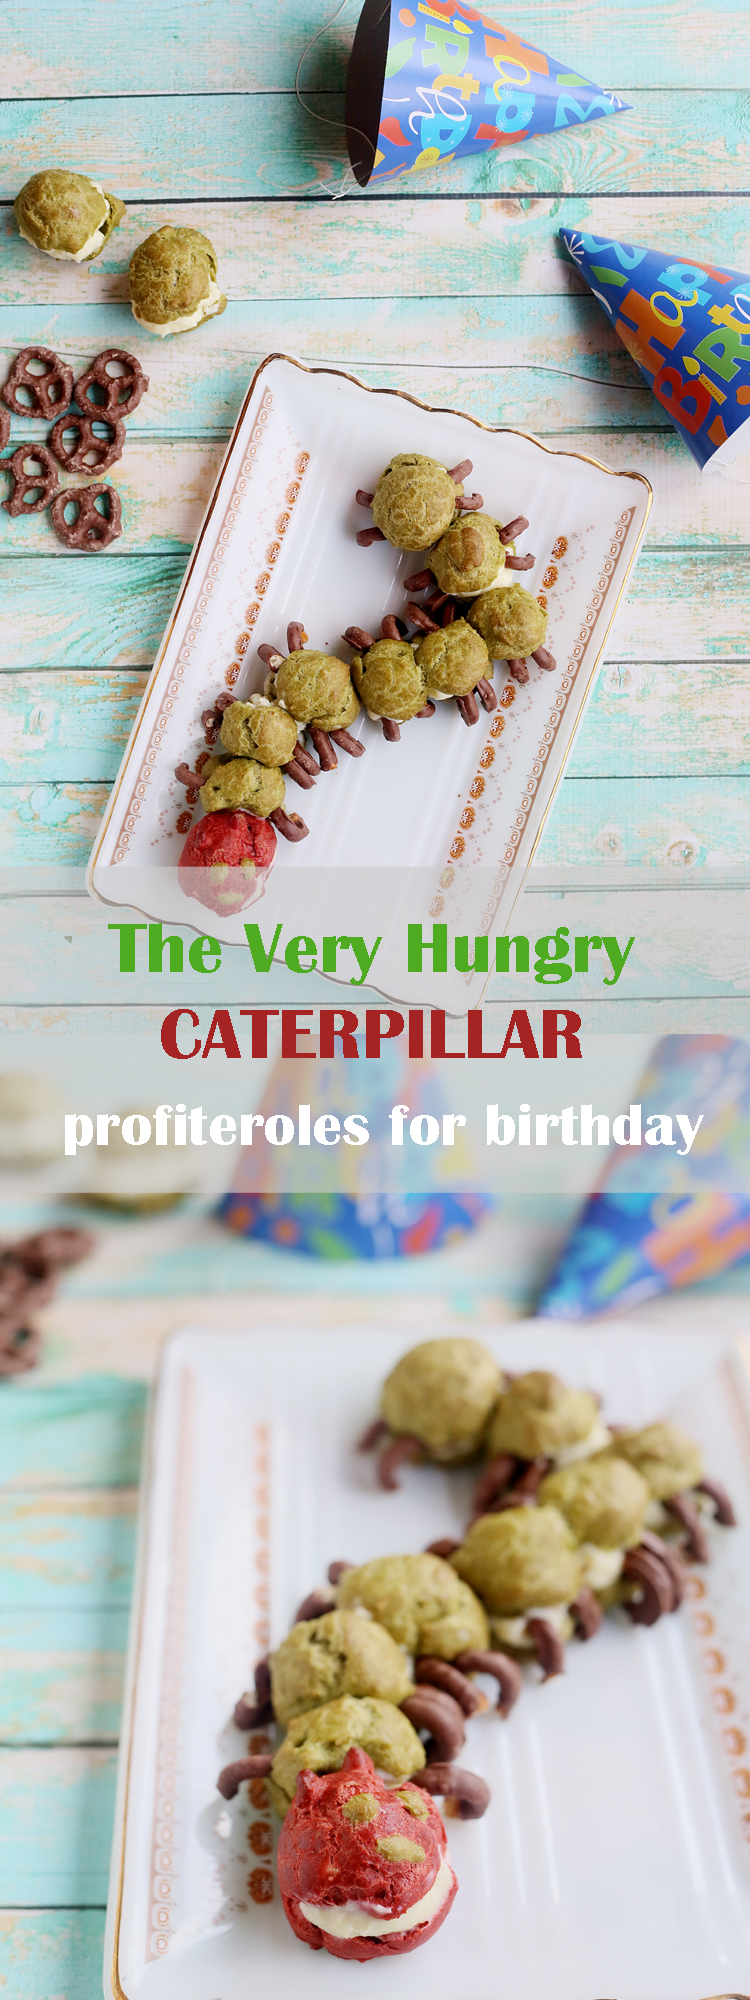 The very hungry Caterpillar Profiteroles